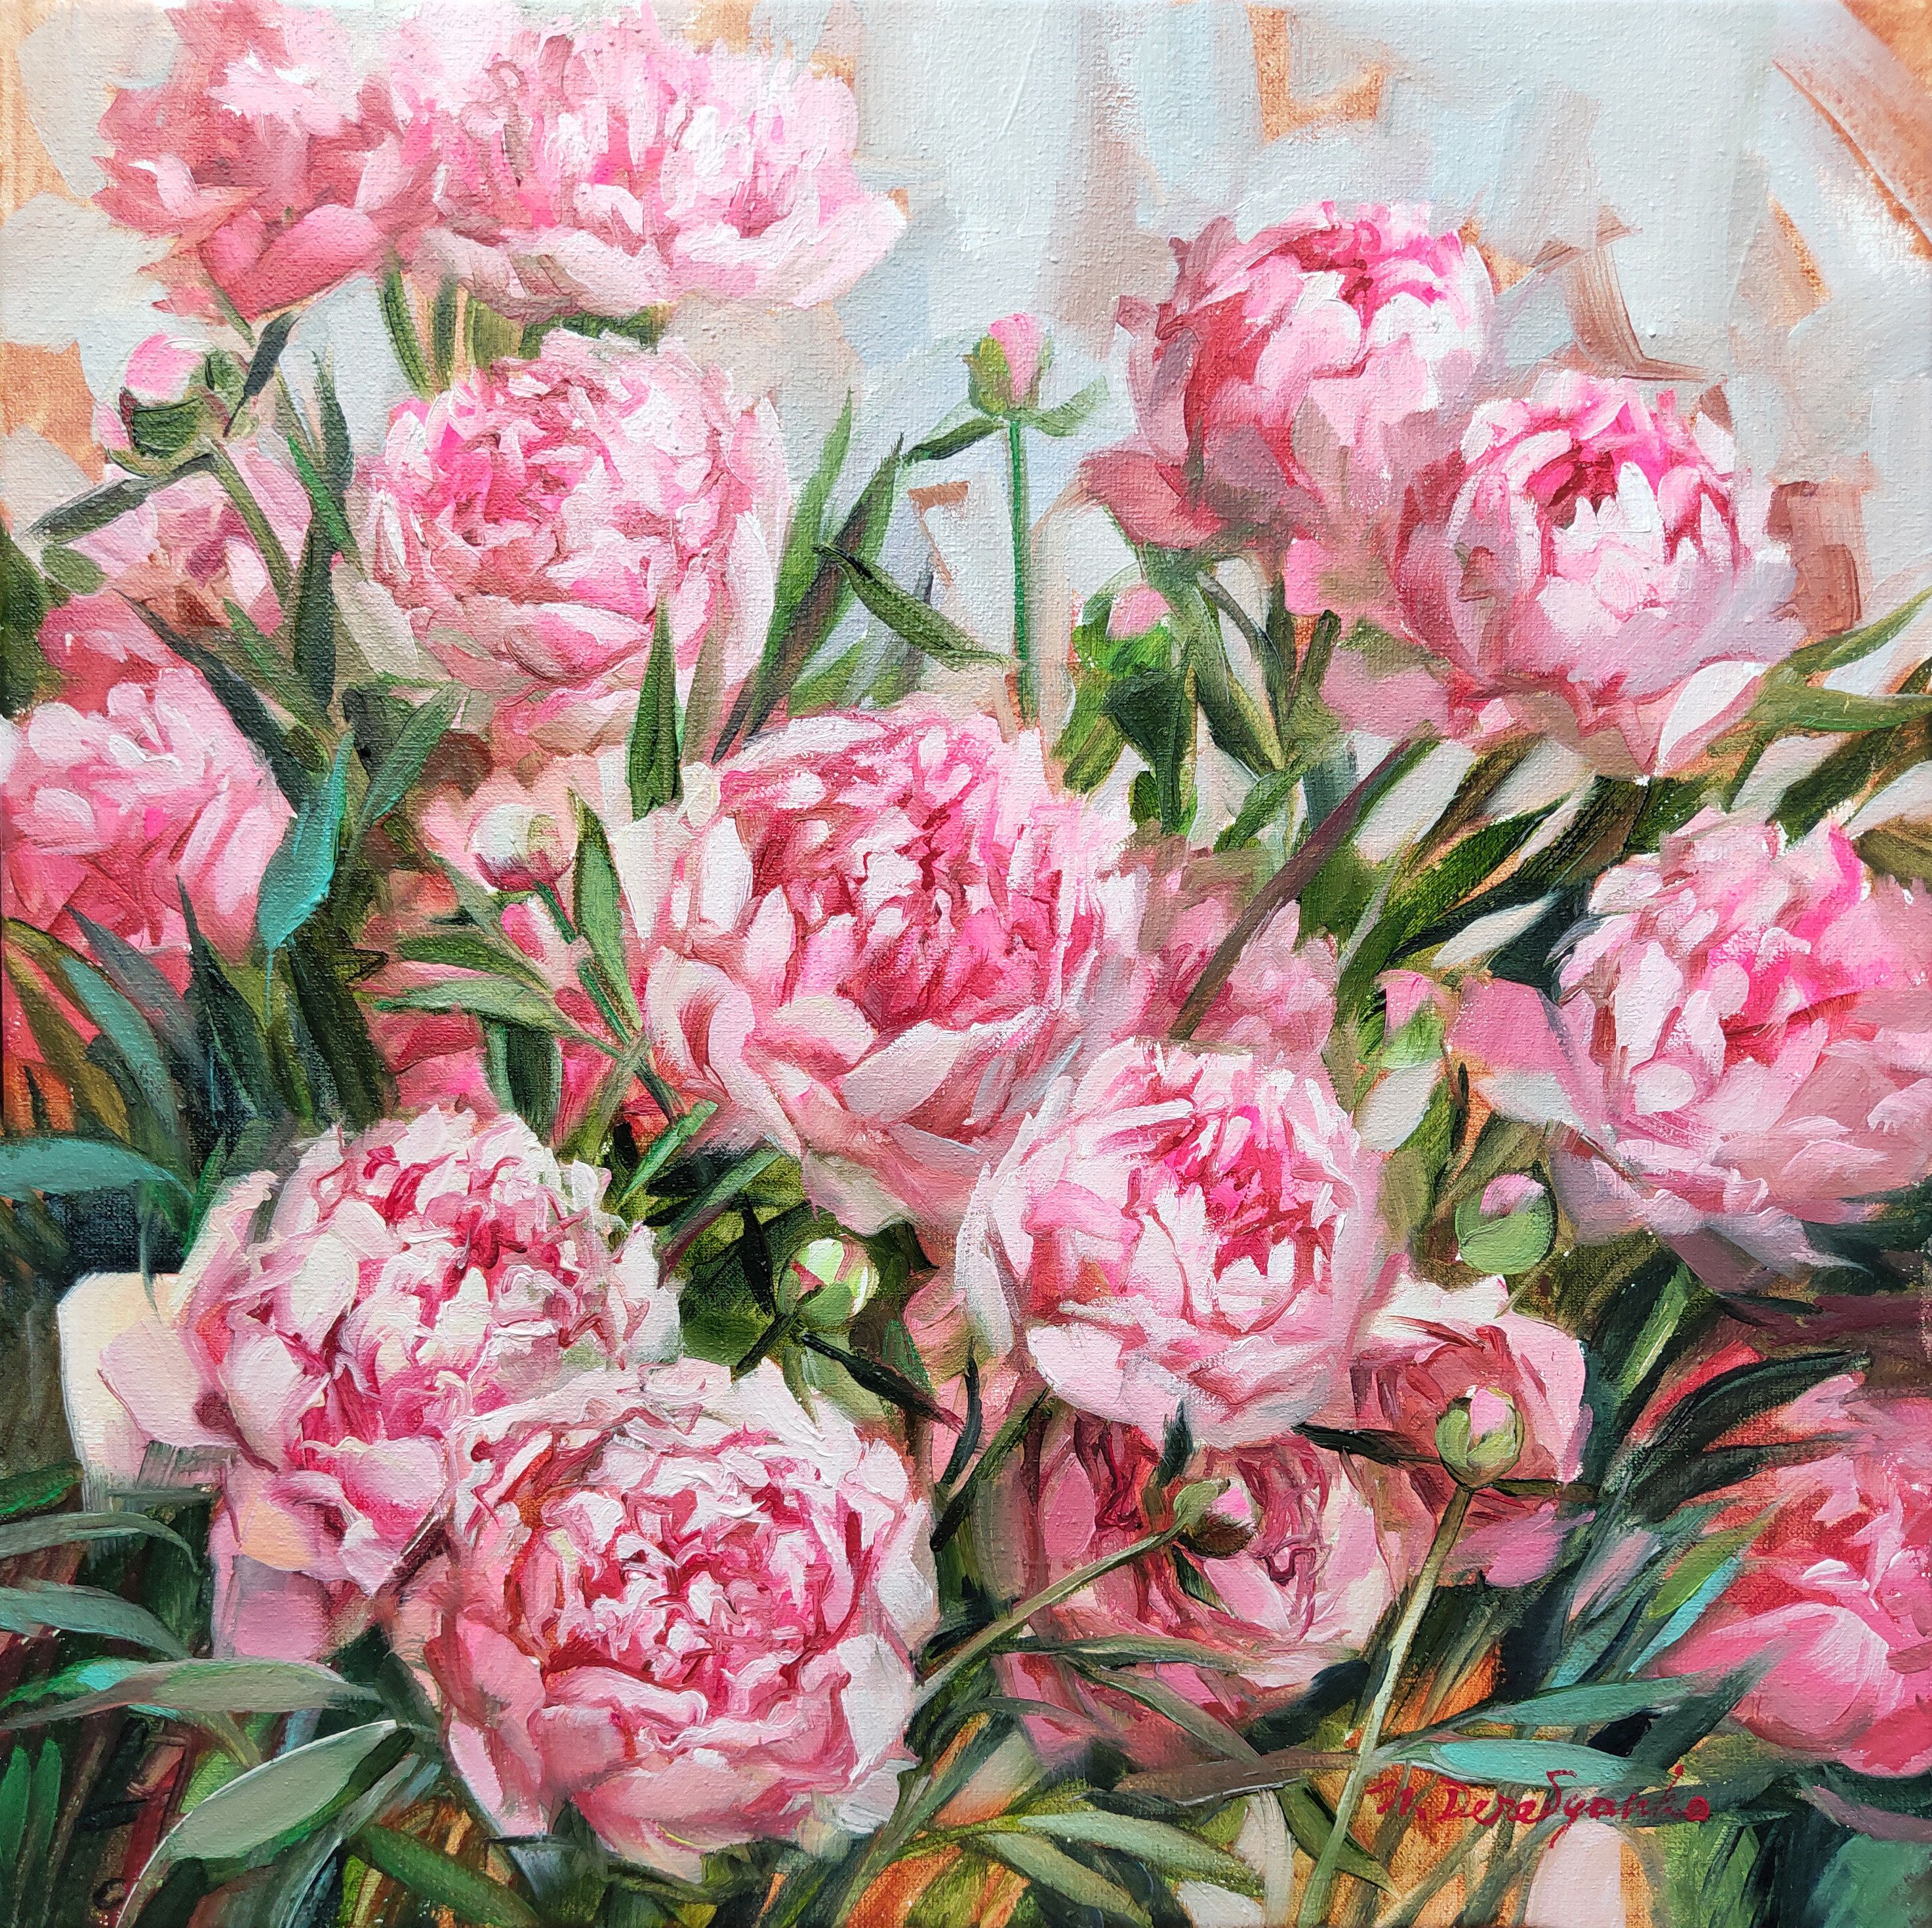 Peony Art Painting Original Flower Oil Painting On Canvas Bright